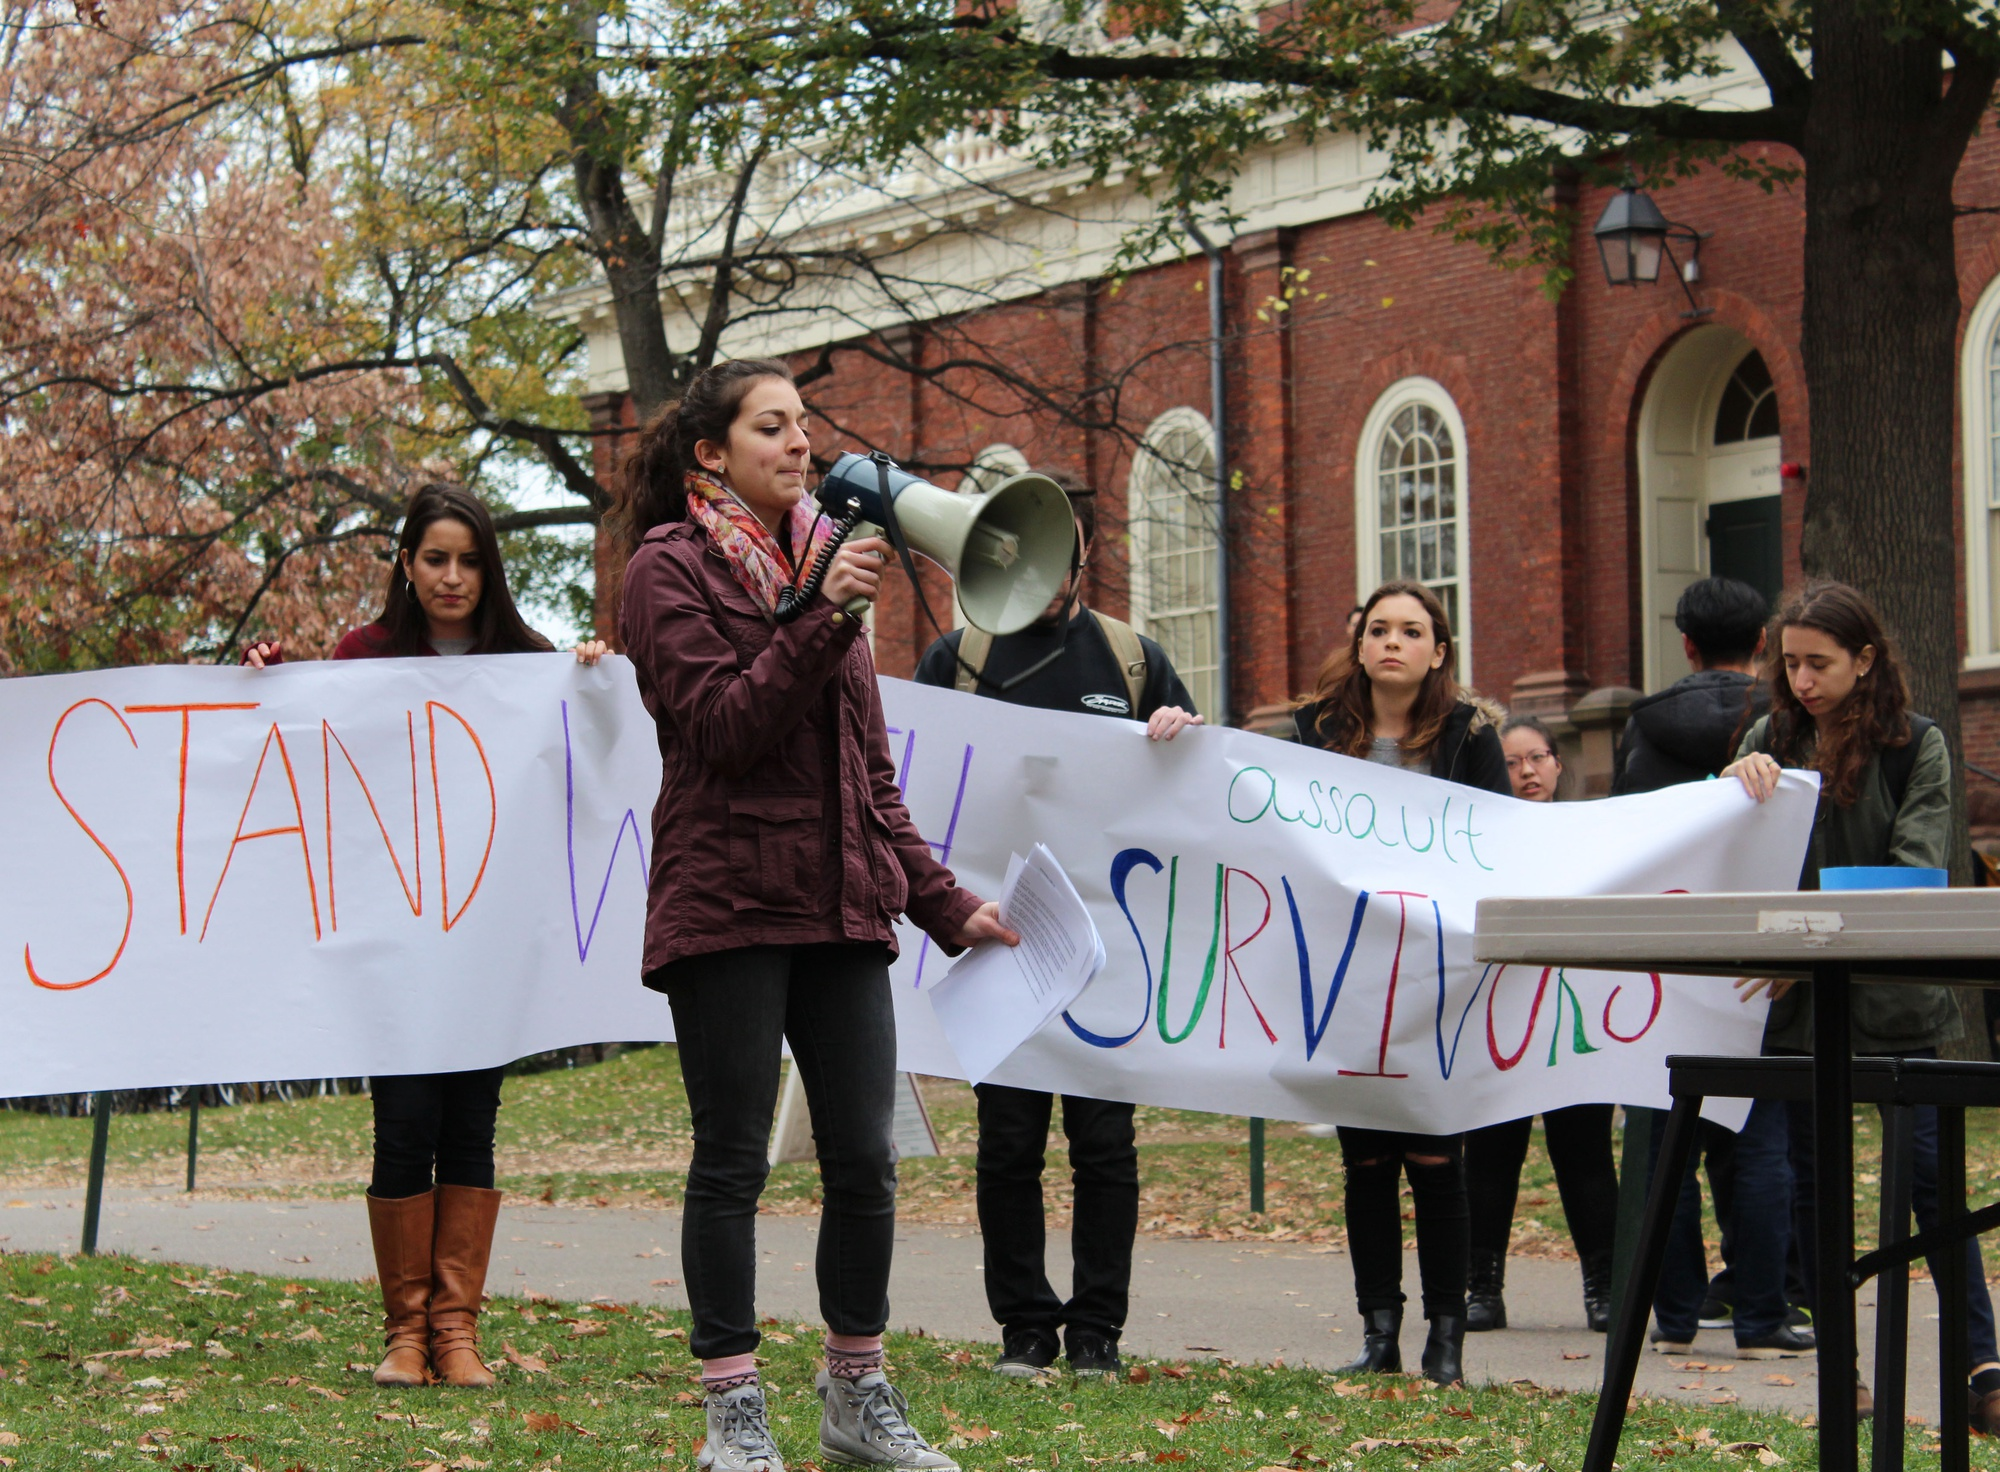 Viviana I. Maymi '16 speaks at a rally outside Massachusetts Hall where more than 80 undergraduates convened to call on the College to commit more resources and attention to preventing sexual assaults on campus.